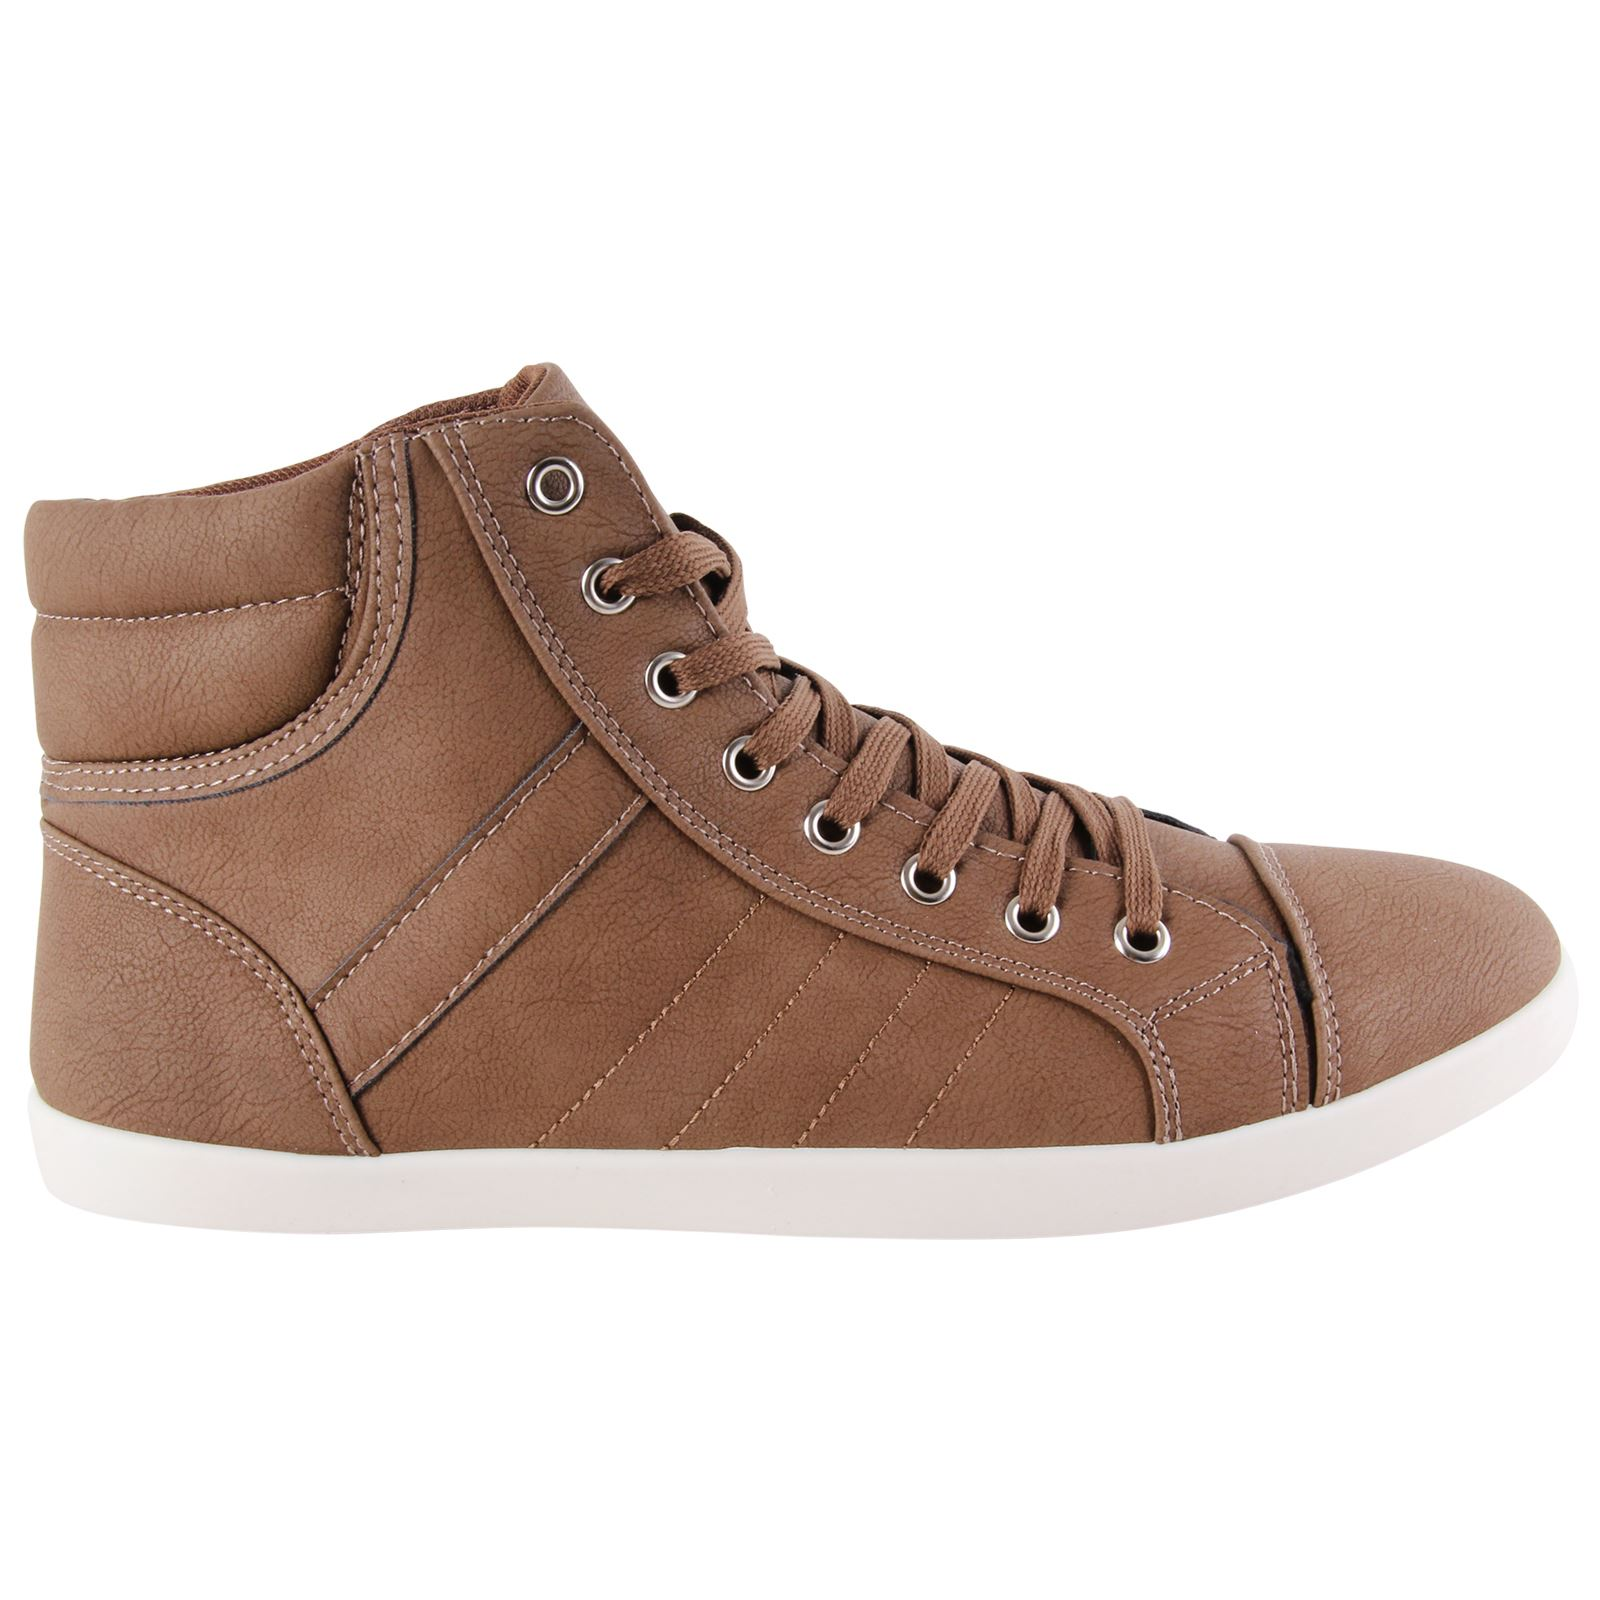 Mens high top sneakers fashion